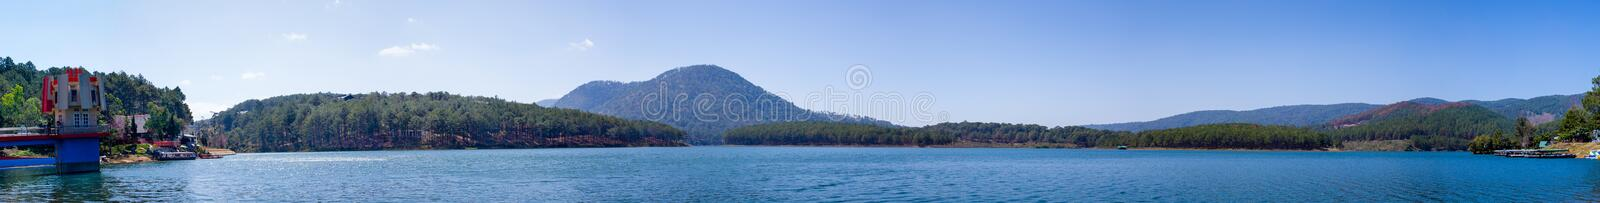 Tuyen Lam Lake - Da Lat. Tuyen Lam Lake is a lake in the city of Da Lat, Lam province. It is the largest freshwater lake in Da Lat, with an area of about 320 royalty free stock images